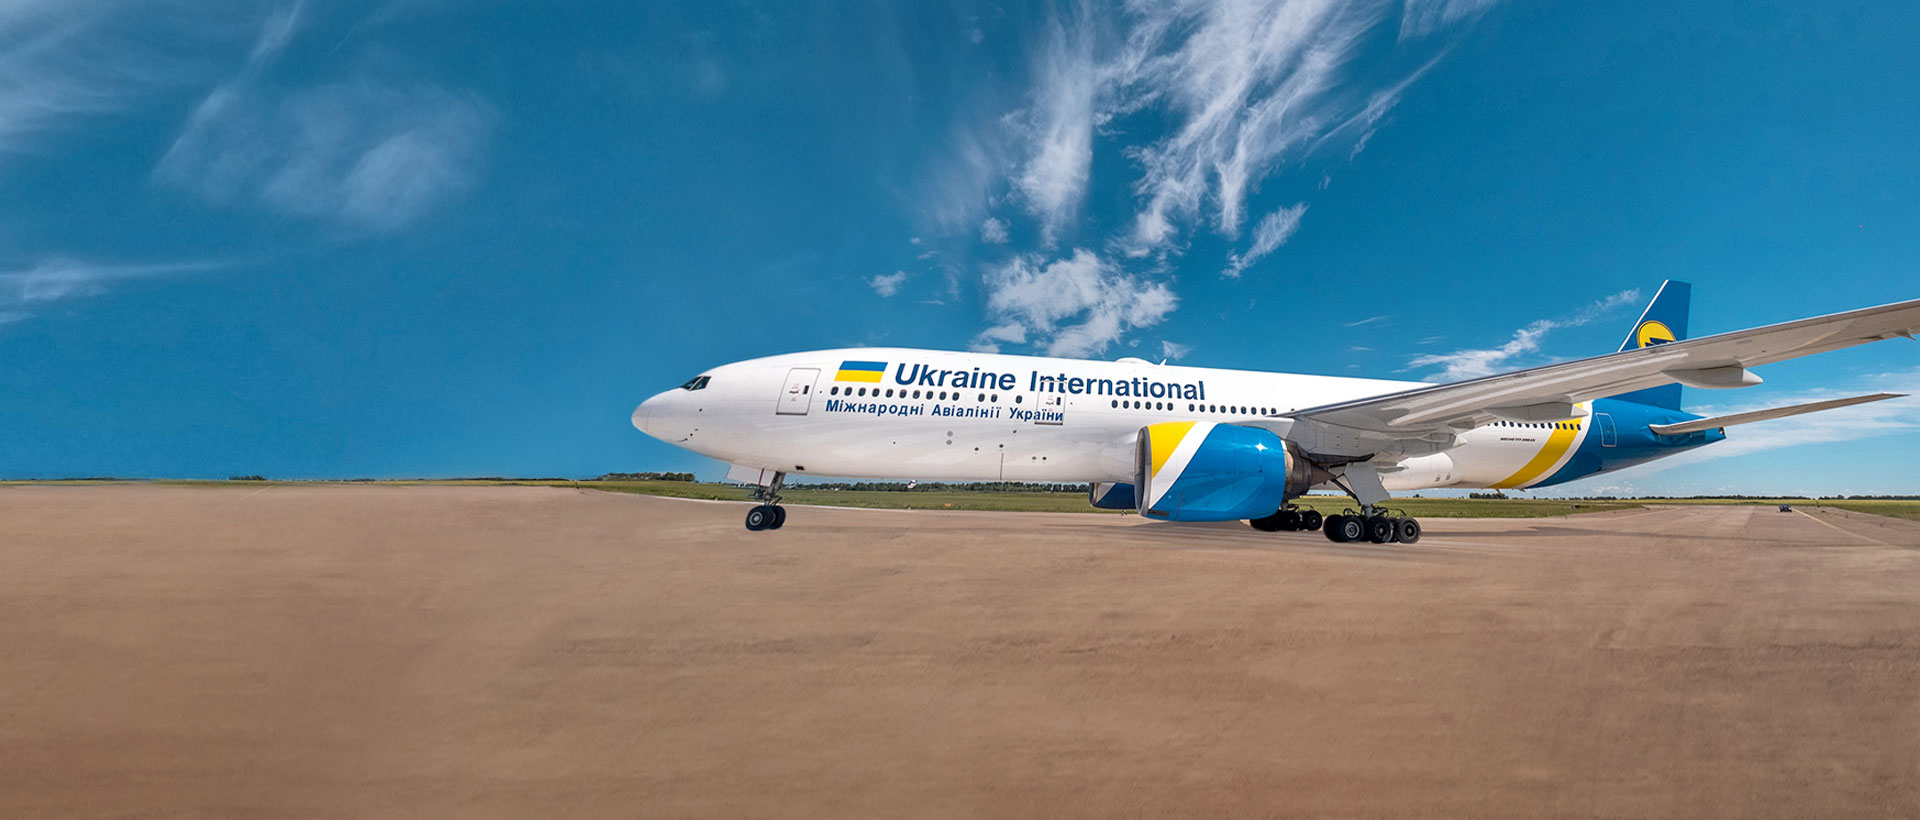 Ukraine International Airlines – Cargo